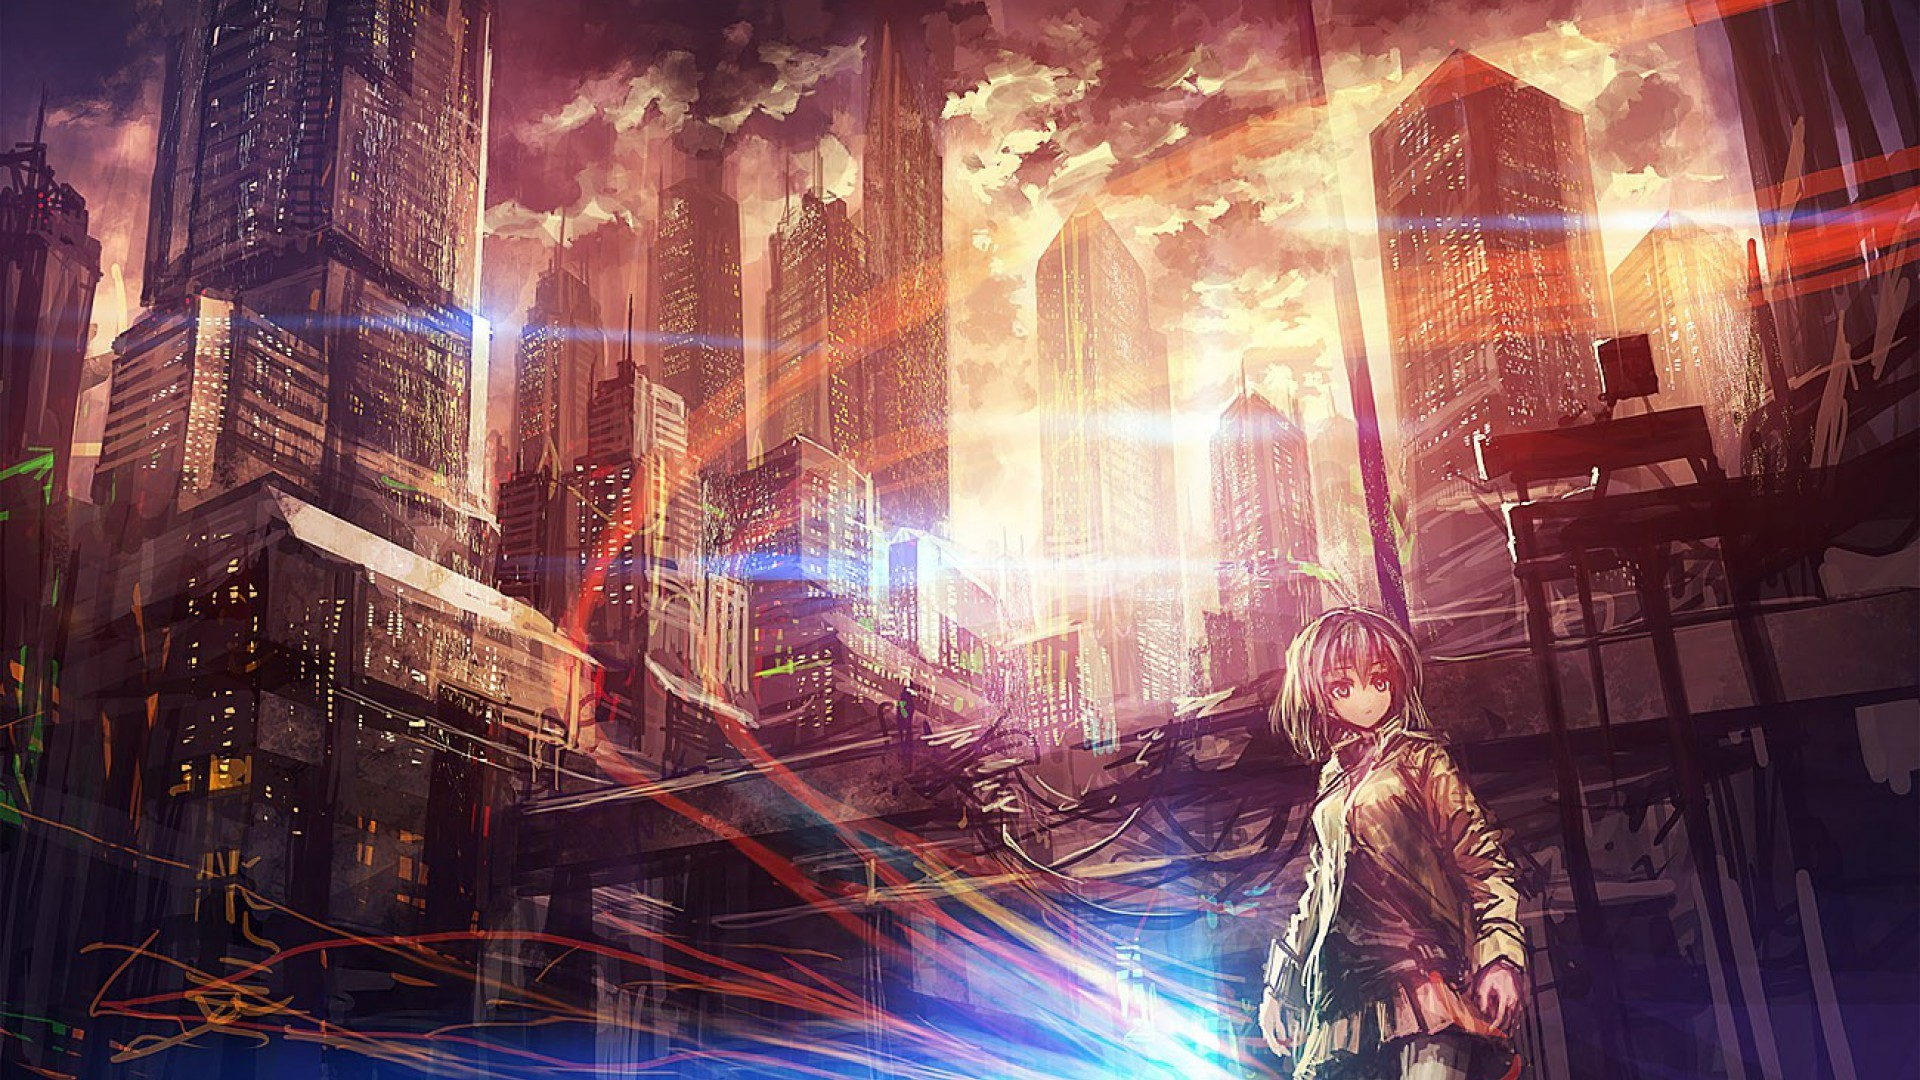 Dark Anime Scenery Wallpaper Images with High Definition Wallpaper  px 594.82 KB